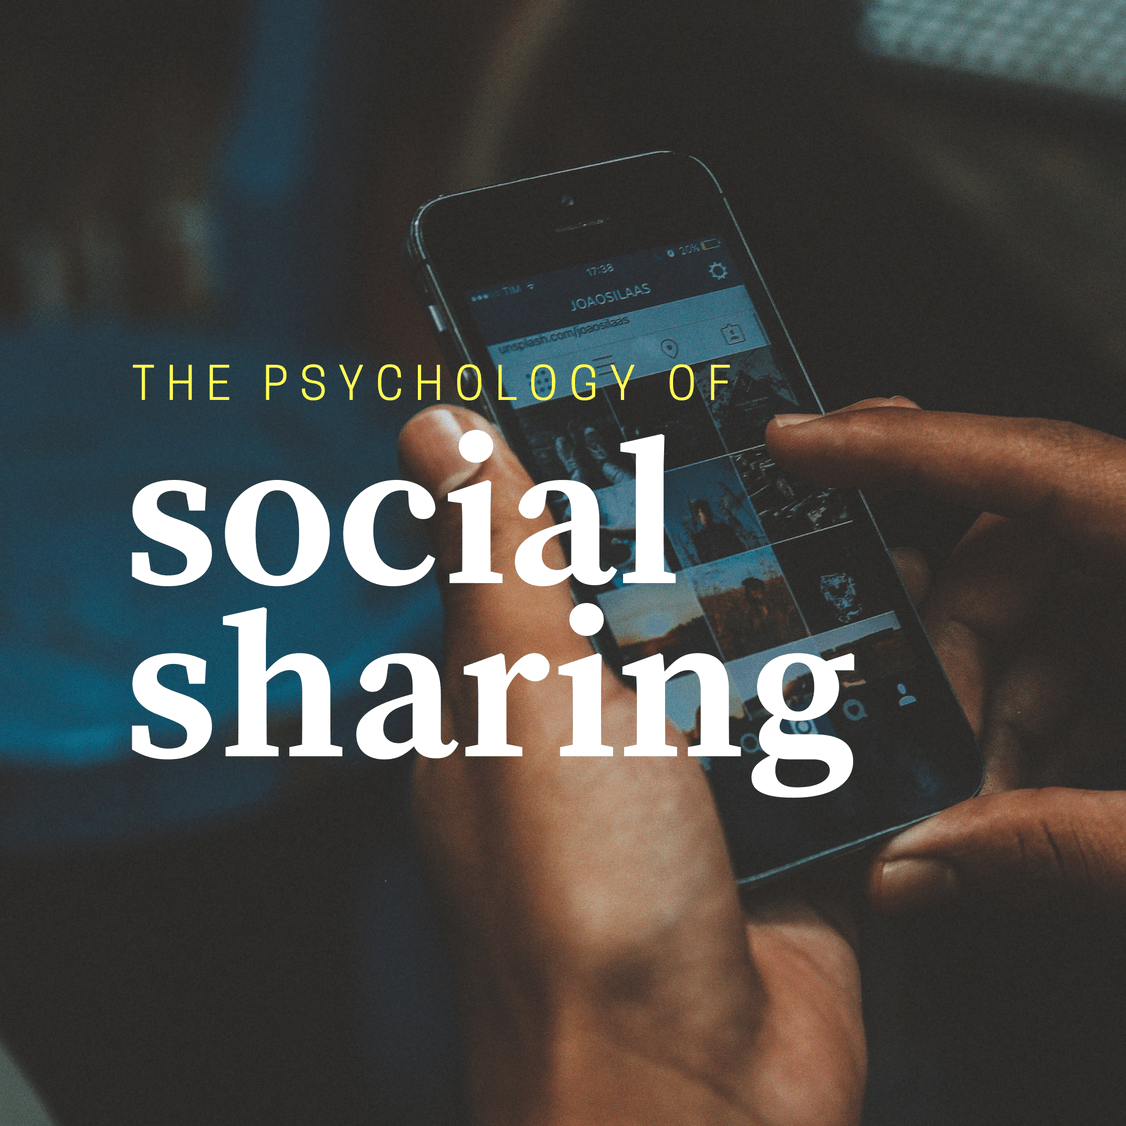 copy-of-copy-of-copy-of-social-sharing